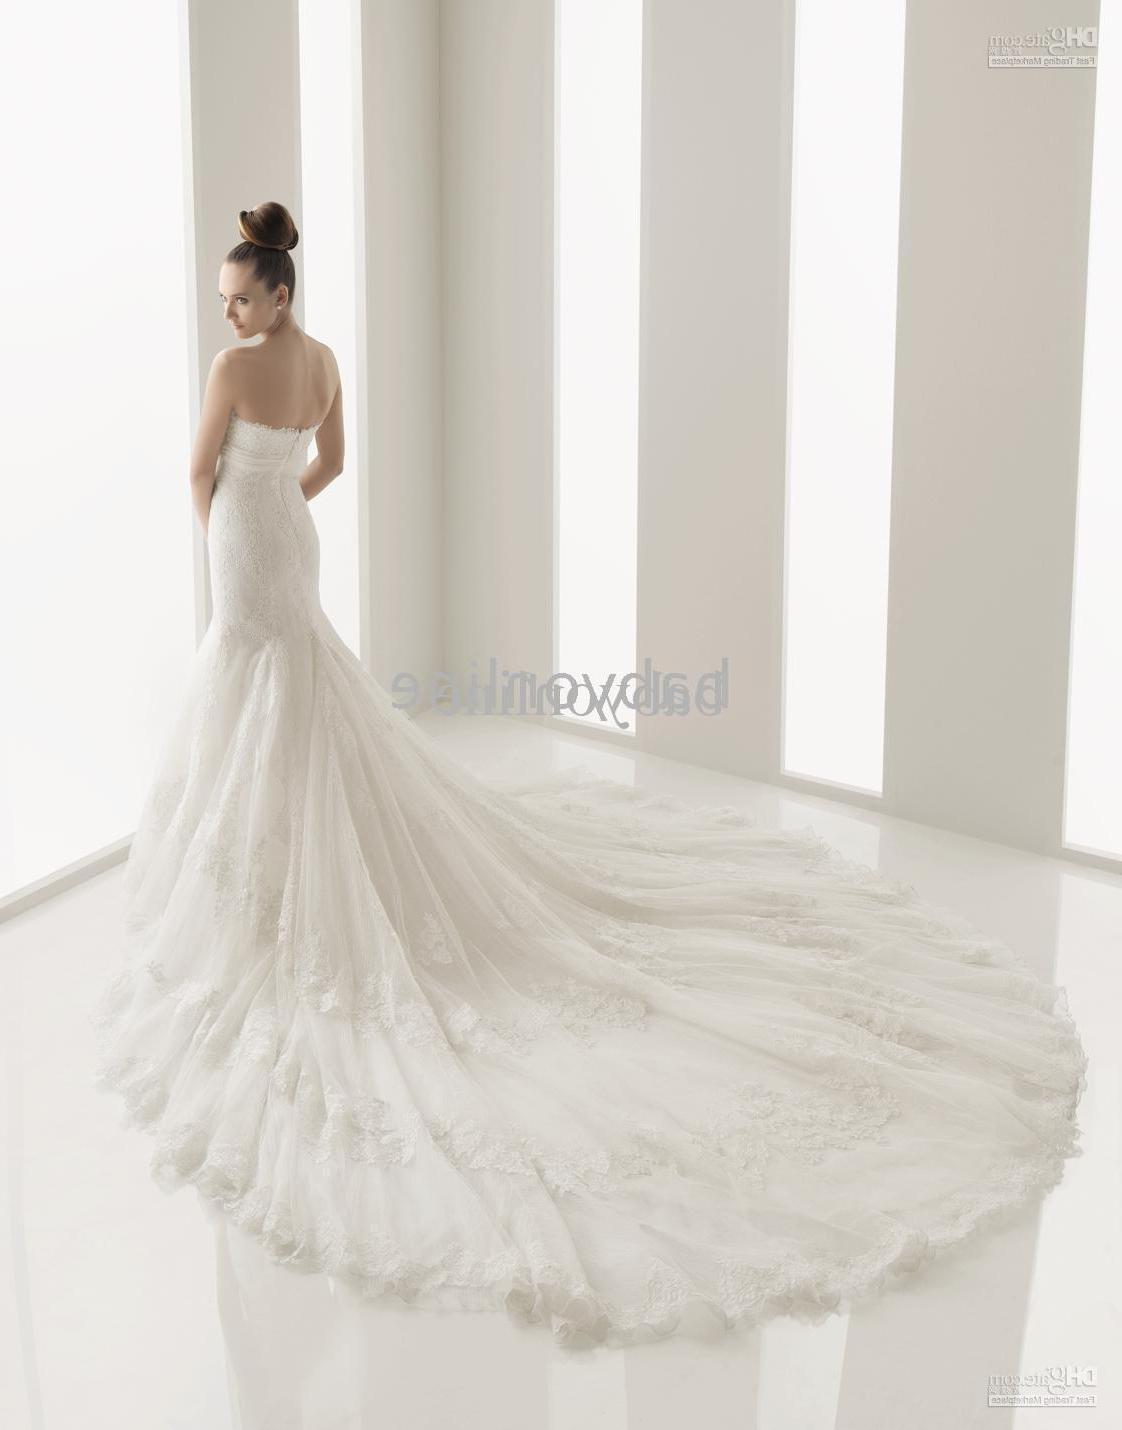 for her wedding dress with